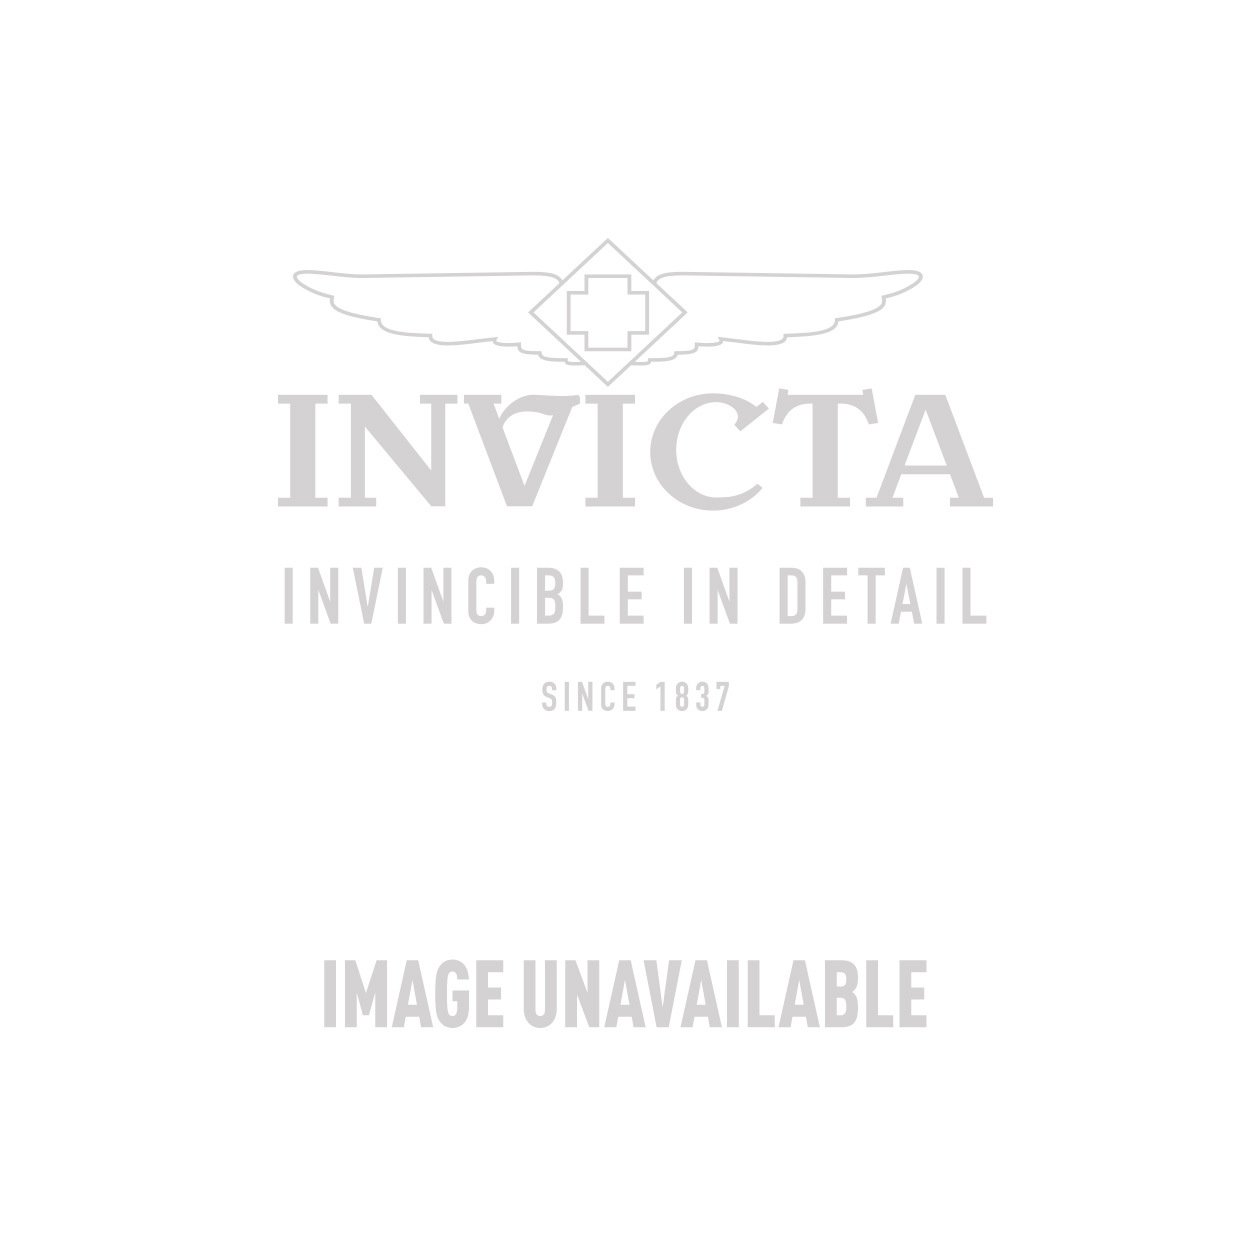 Invicta Corduba Swiss Movement Quartz Watch - Stainless Steel case with Silver tone Leather band - Model 14796